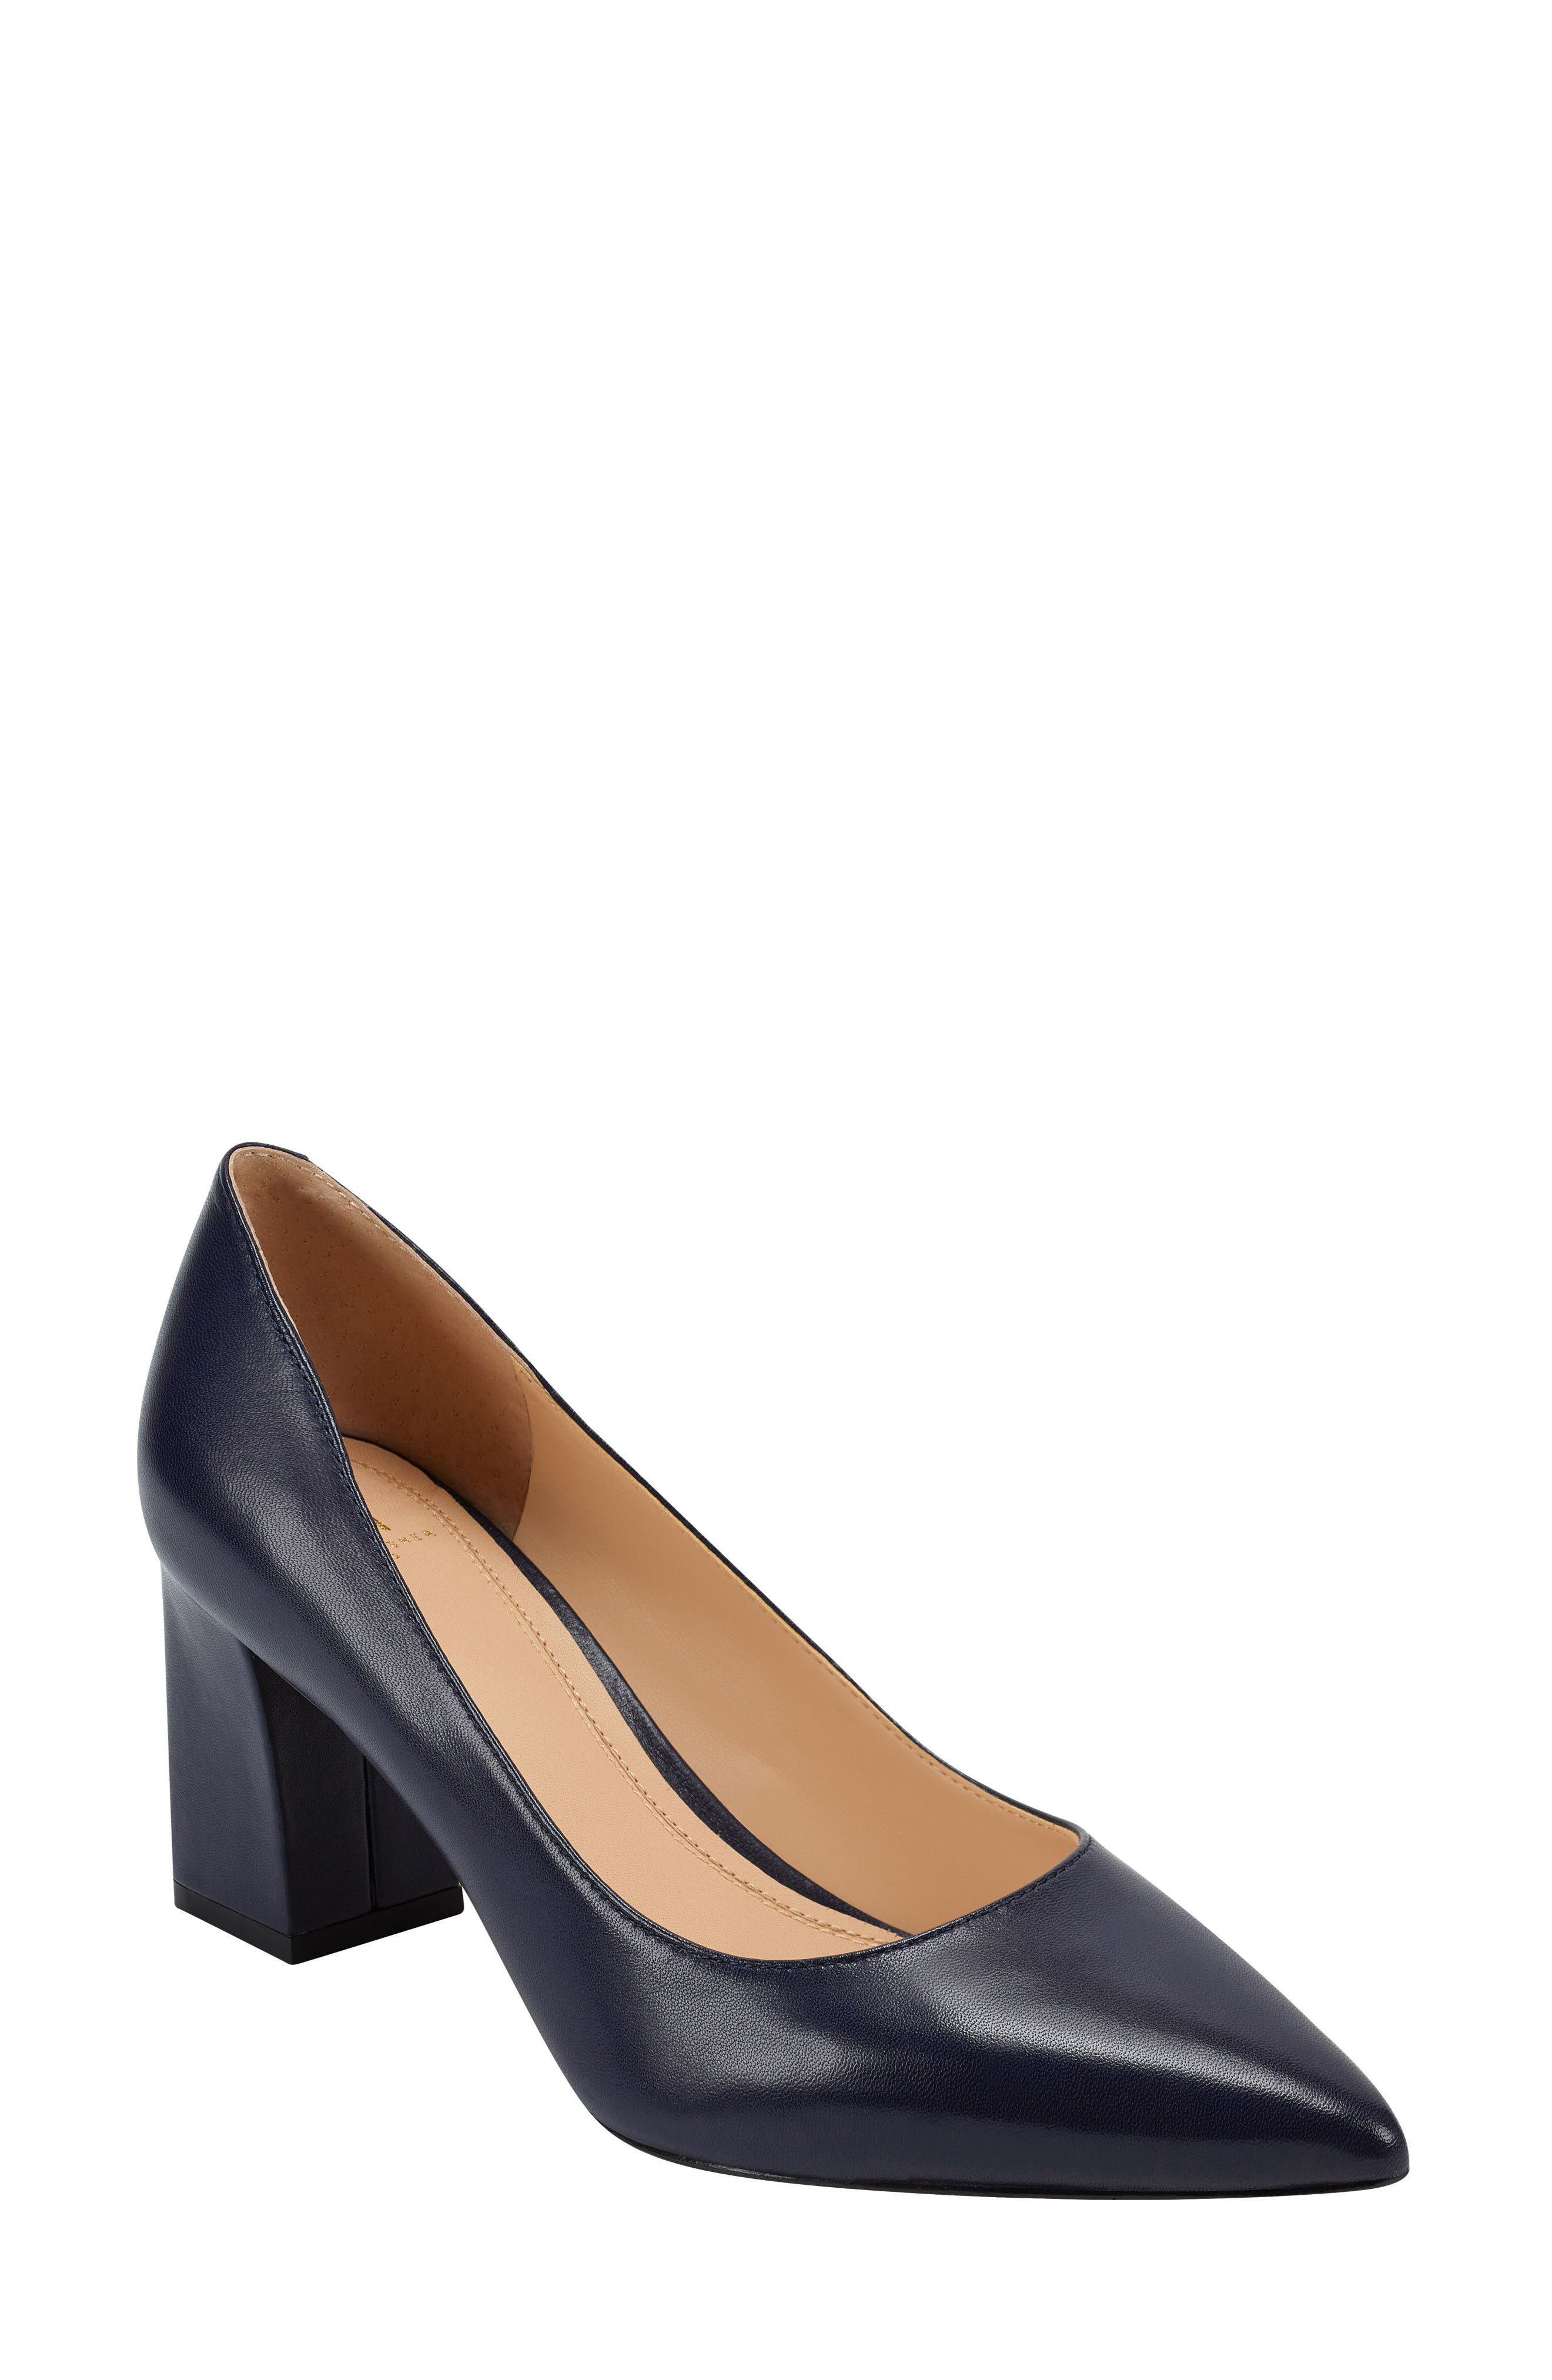 Clean lines highlight the timeless appeal of a classic pointy-toe pump lifted by an on-trend, structural block heel. Style Name: Marc Fisher Ltd Zala Block Heel Pump (Women). Style Number: 5154387 39. Available in stores.